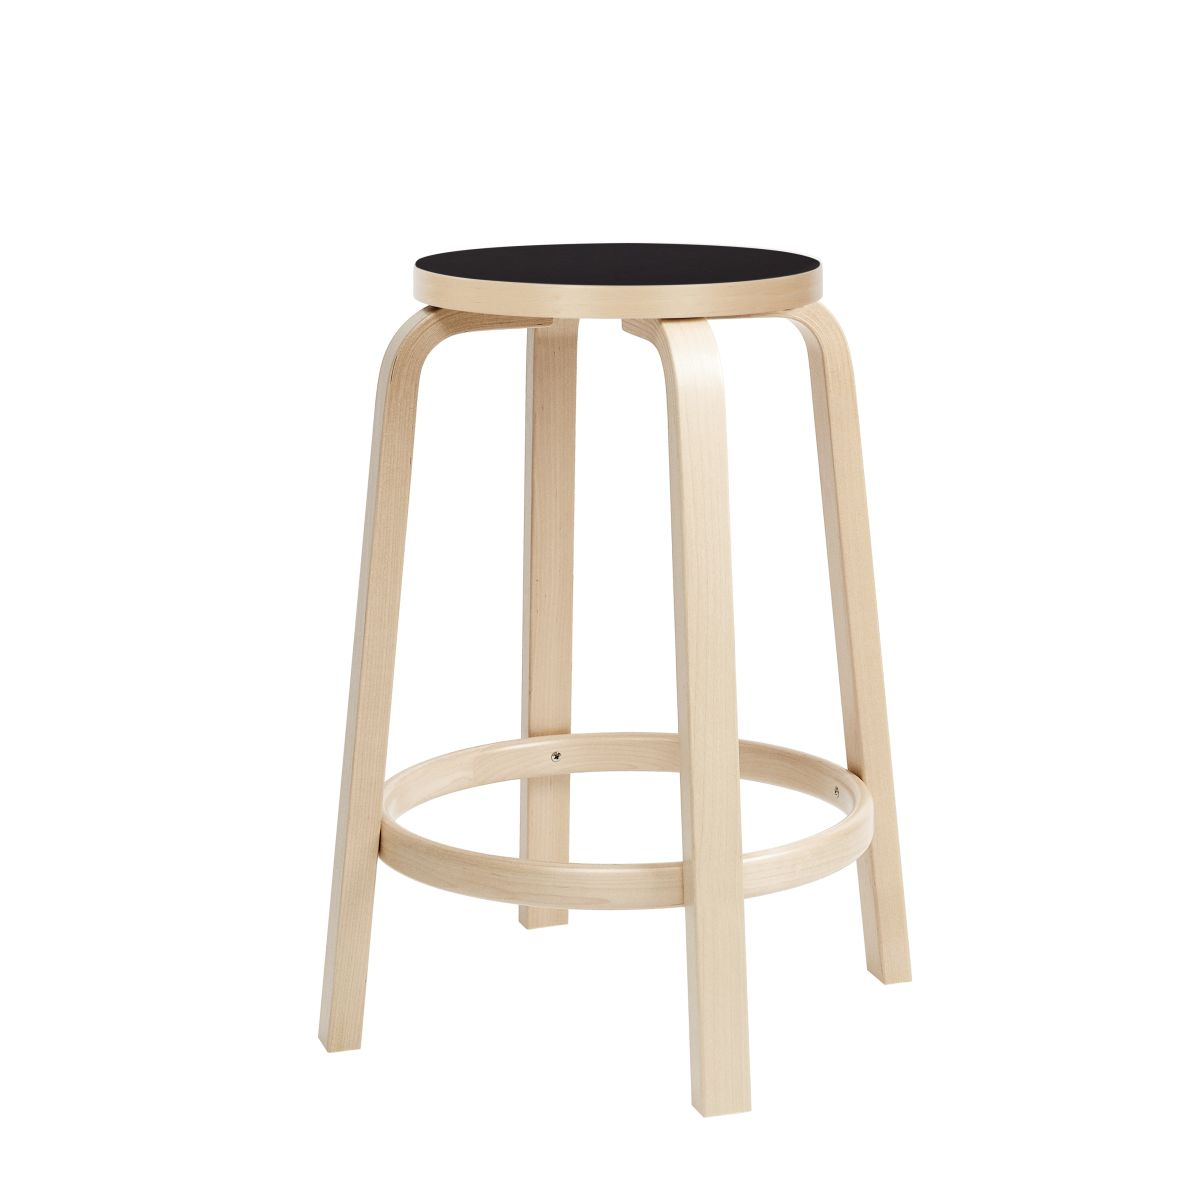 Bar-Stool-64-65Cm-Legs-Birch_Top-Black-Linoleum_Srgb-2430520